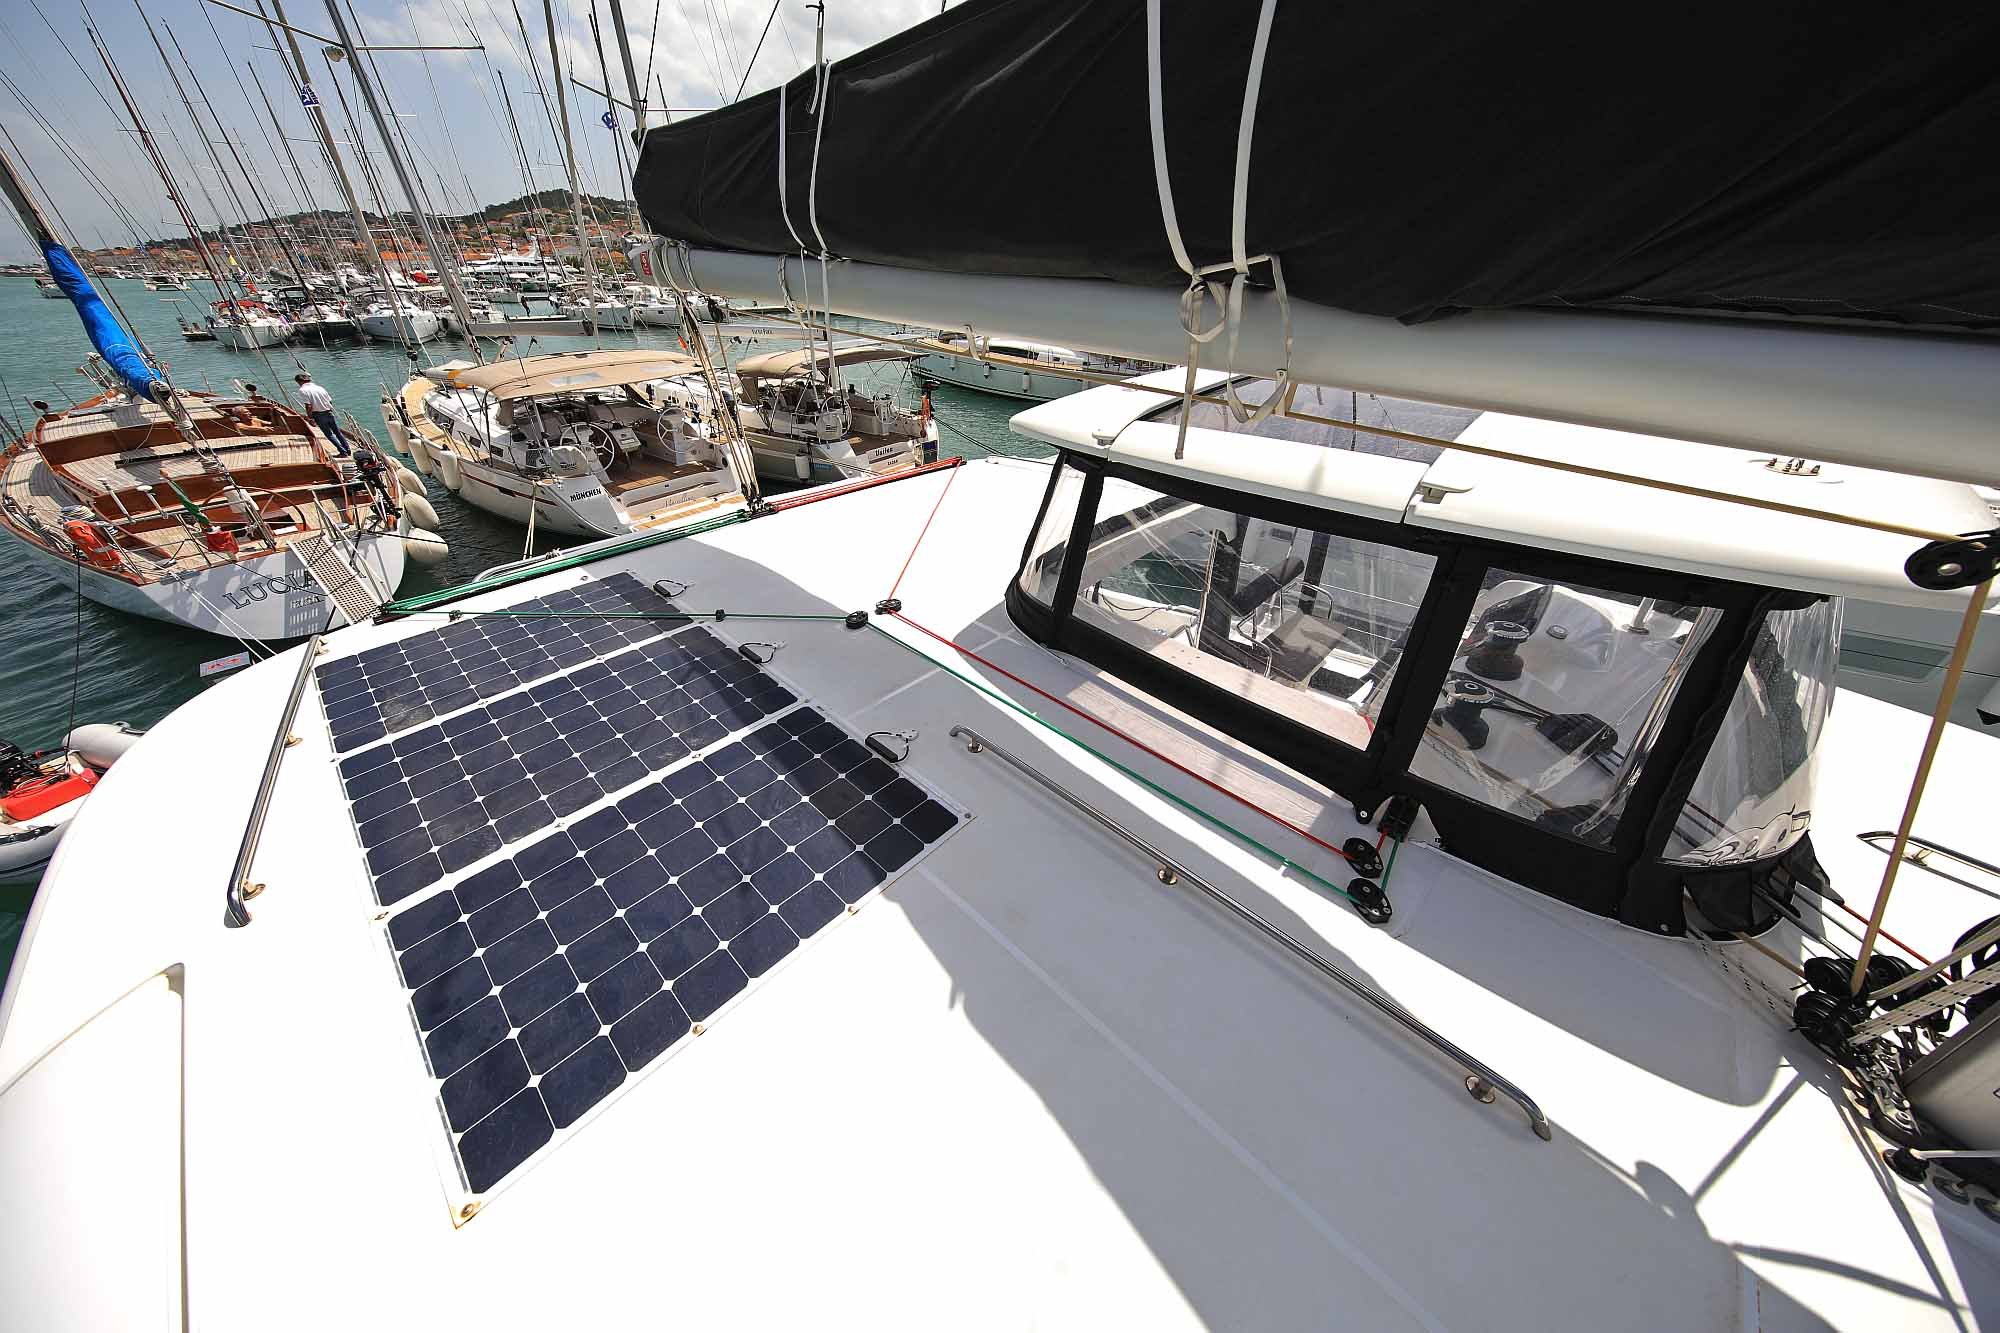 Solara installation on catamaran Lagoon 42: Ready to sail across the Atlantic